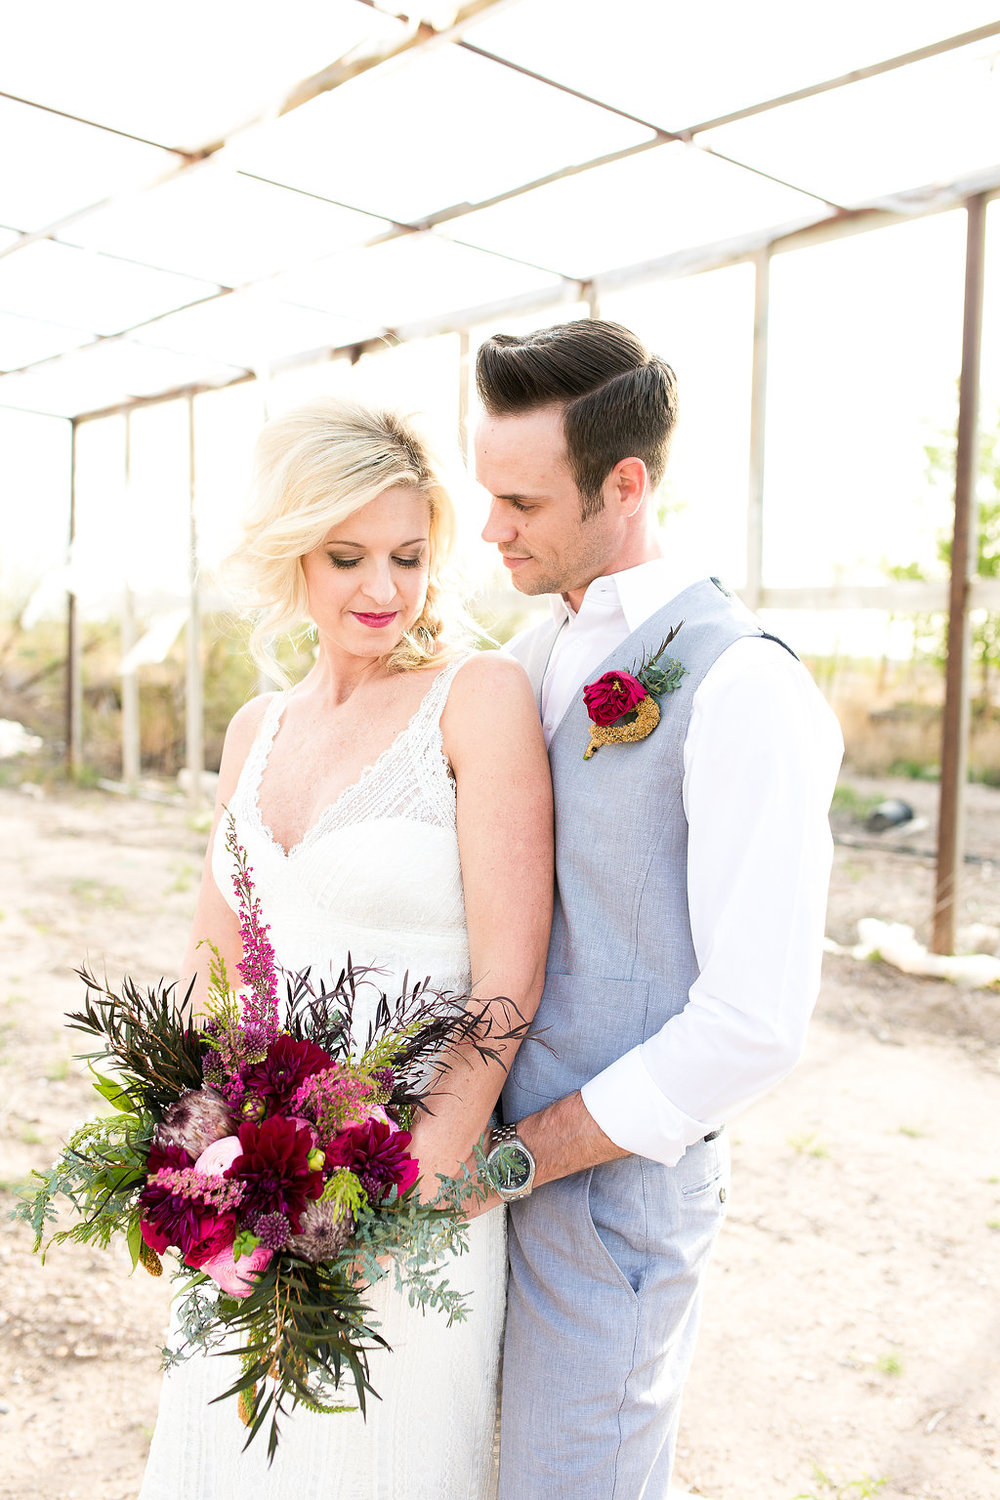 Floral Centric Windmill Winery Styled Shoot- Konsider It Done- AZ Arizona Wedding & Event Planner, Designer, Coordinator Planning in Scottsdale, Phoenix, Paradise Valley, Tempe, Gilbert, Mesa, Chandler, Tucson, Sedona